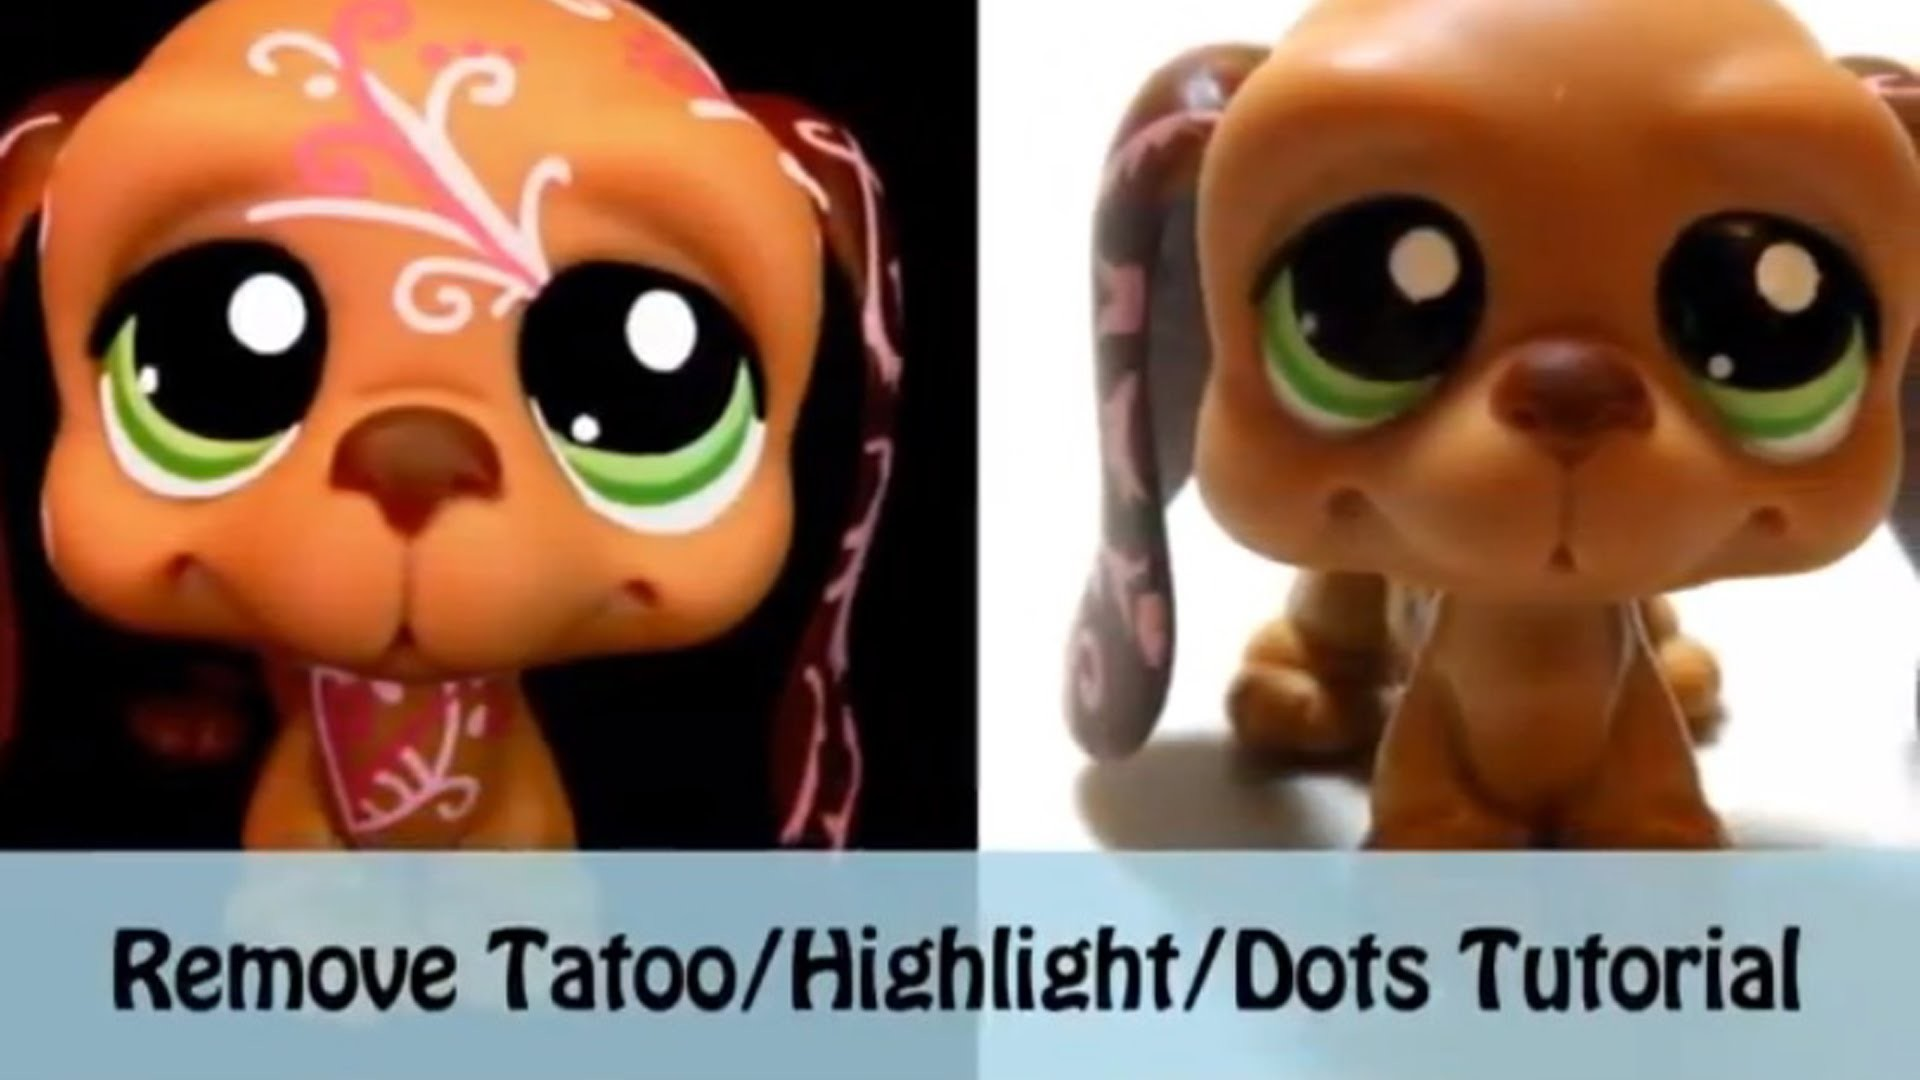 How To: Make-up 101 #1 Remove the Tatoo.Highlight.Dots (LPS)